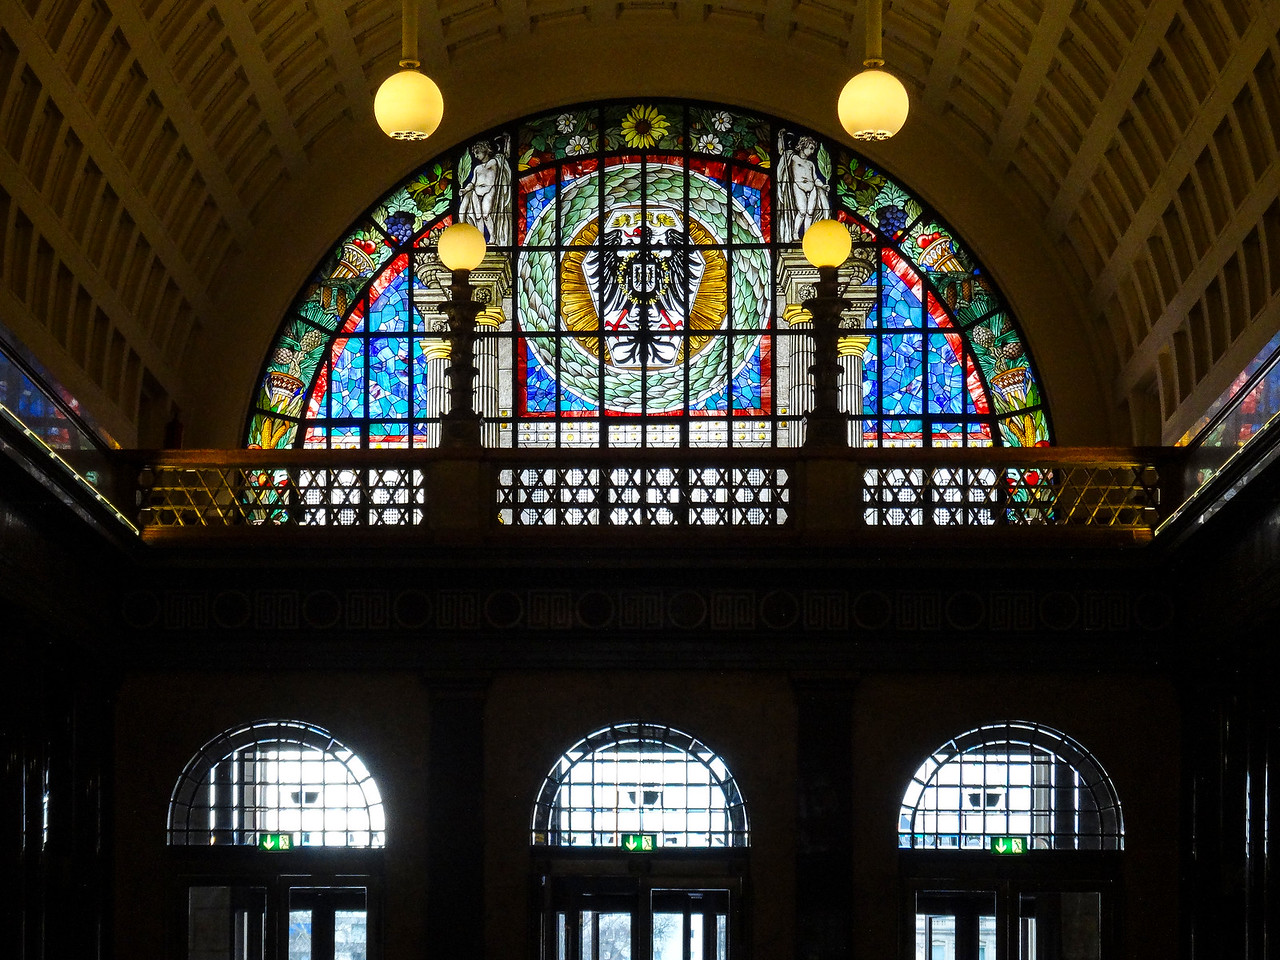 Cool stained glass inside the Casino